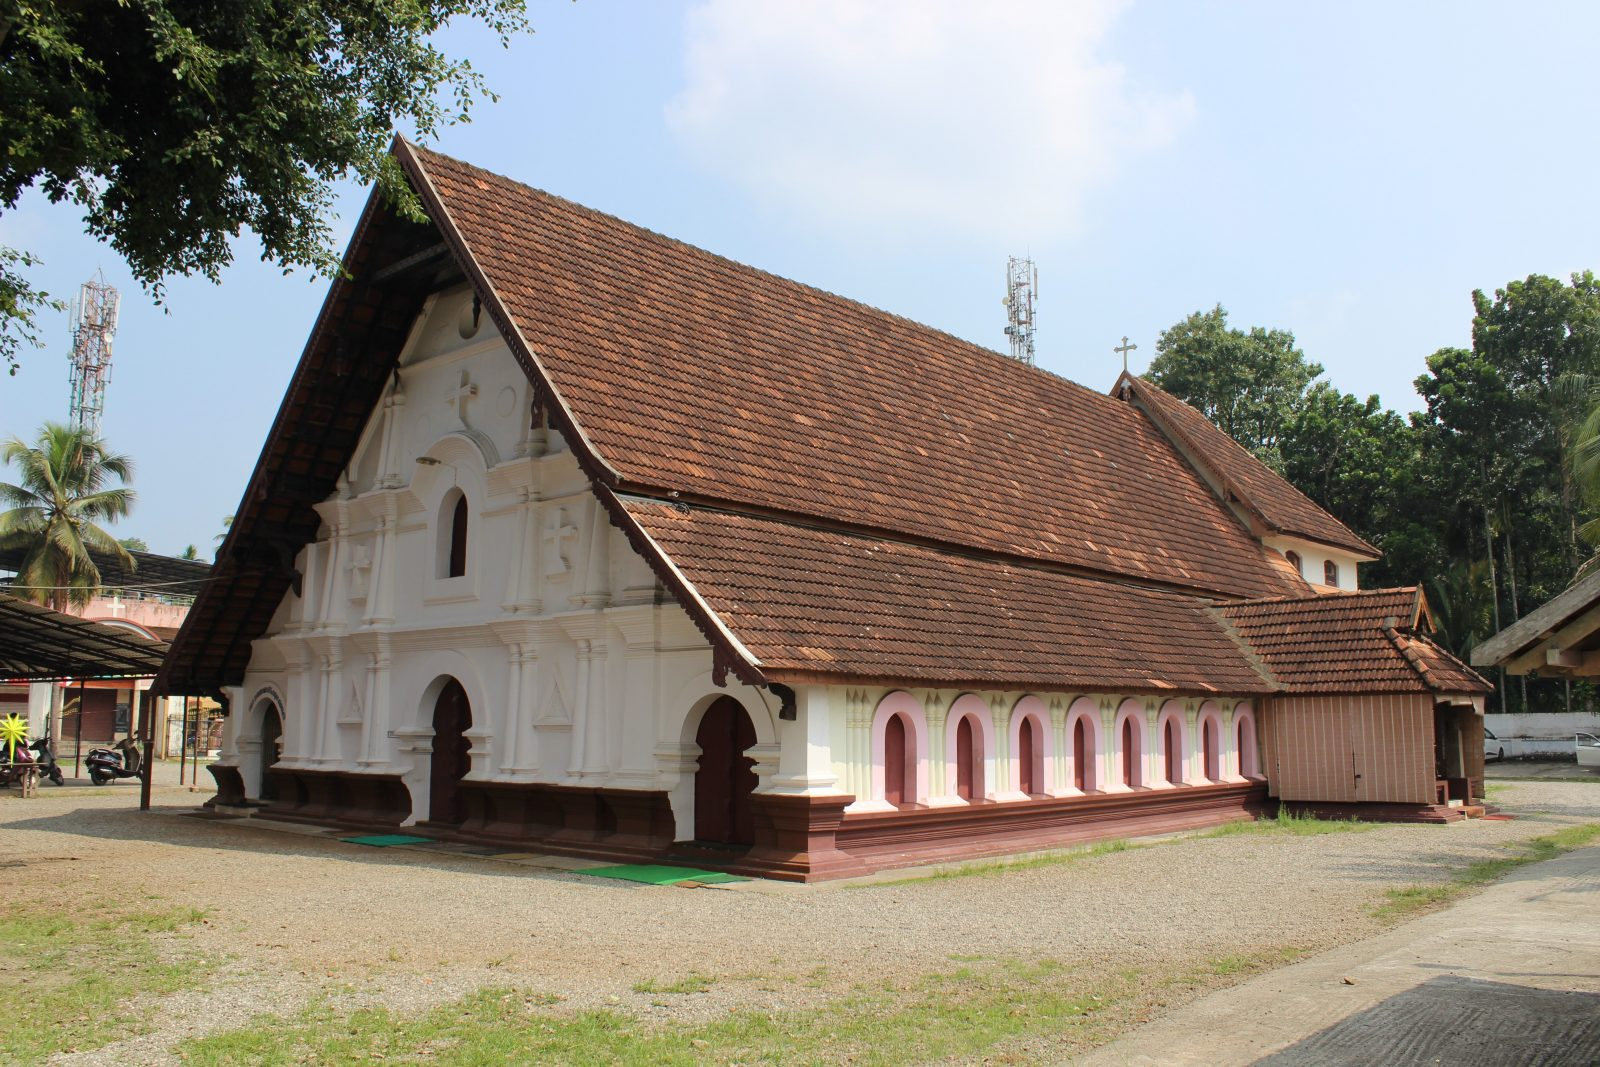 quaint little one-             St Thomas Orthodox Church,  Karthikapally. Kerala, India. More than 1200 years old. Camera used.